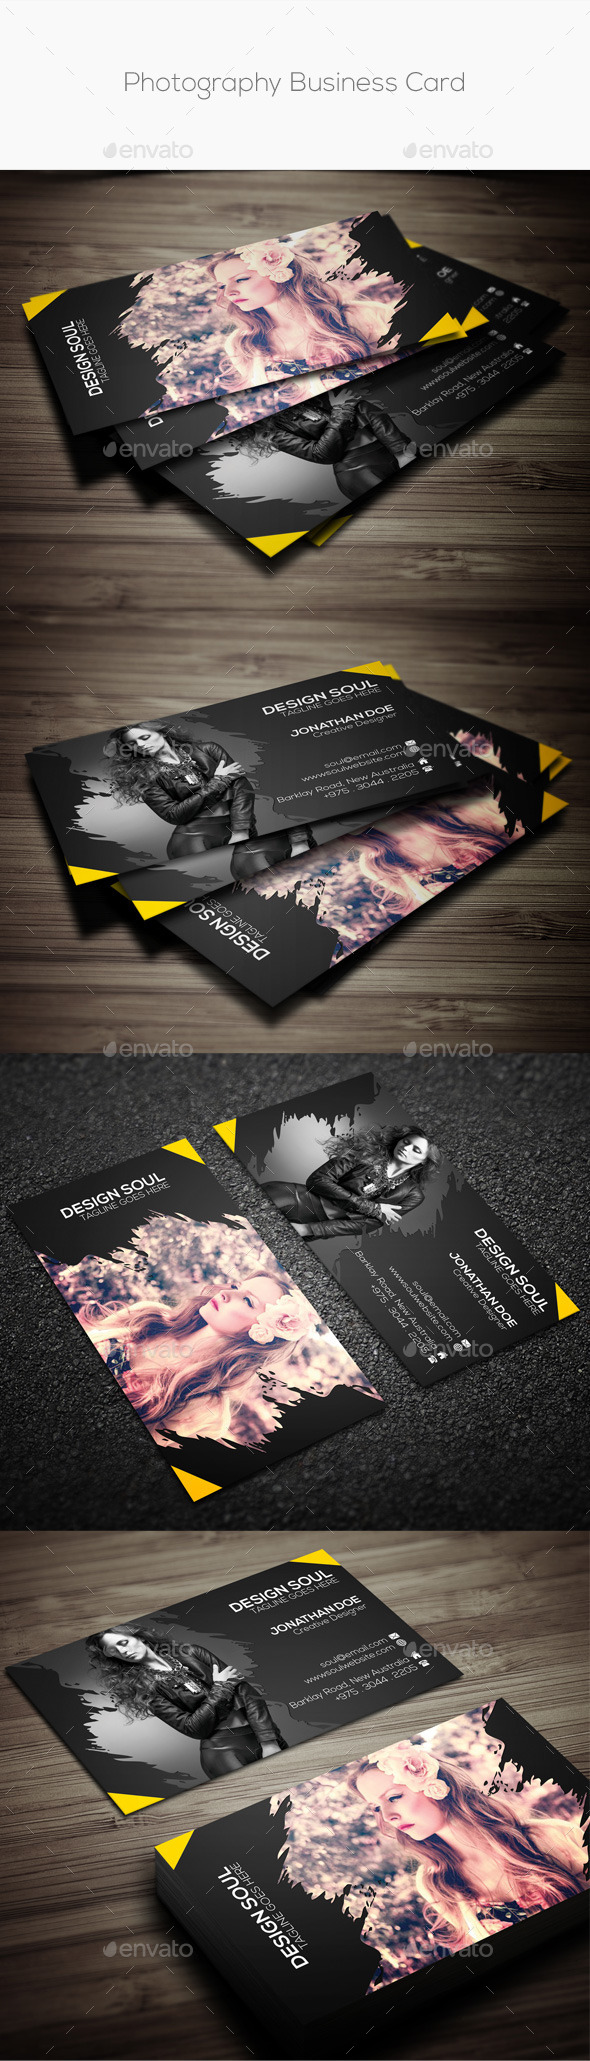 GraphicRiver Photography Business Card 10908753